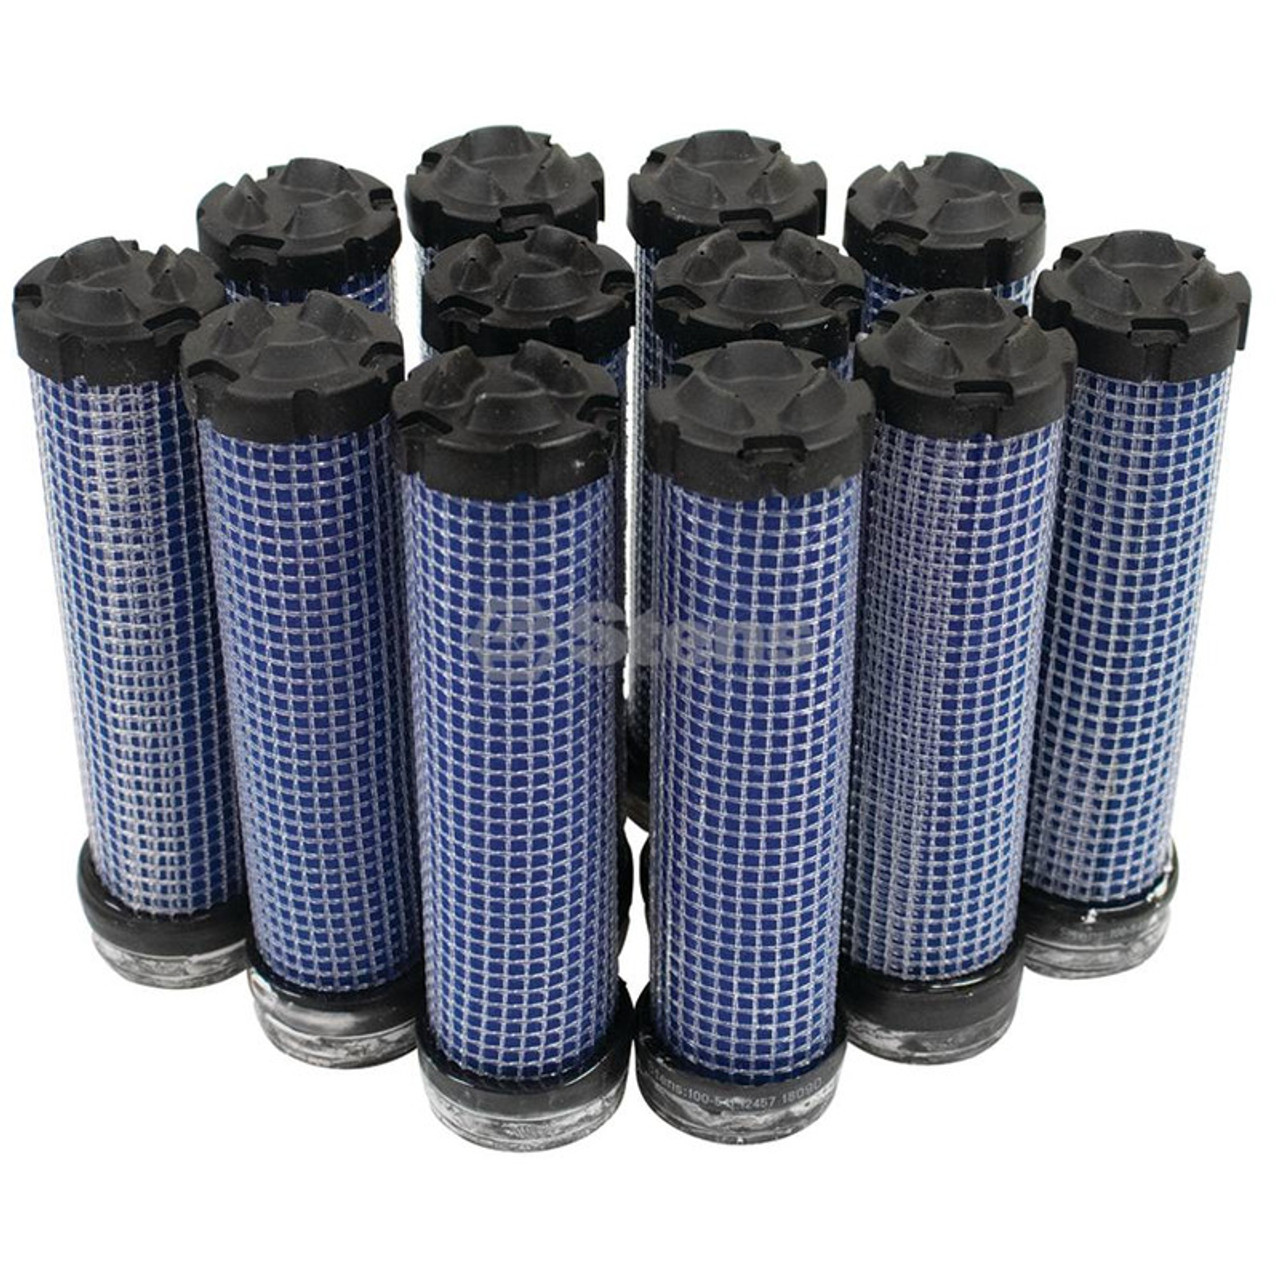 Inner Air Filter for Kubota K756182360, K7561-82360, Shop Pack of 12 Air Filters